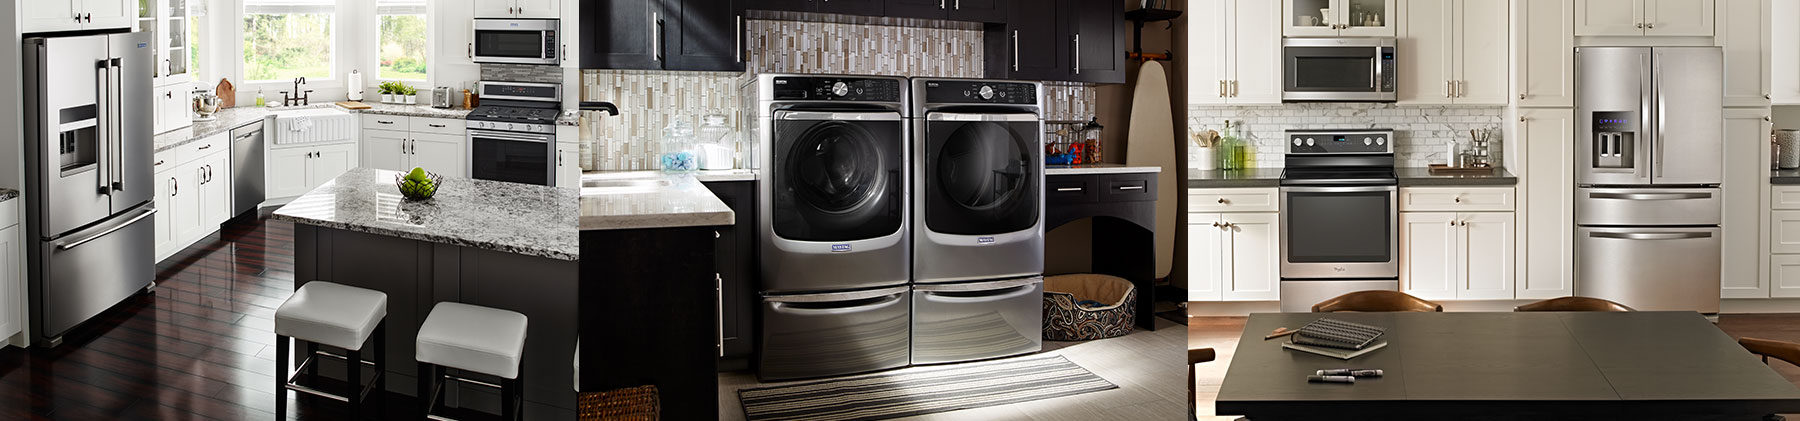 About Fullerton Appliance